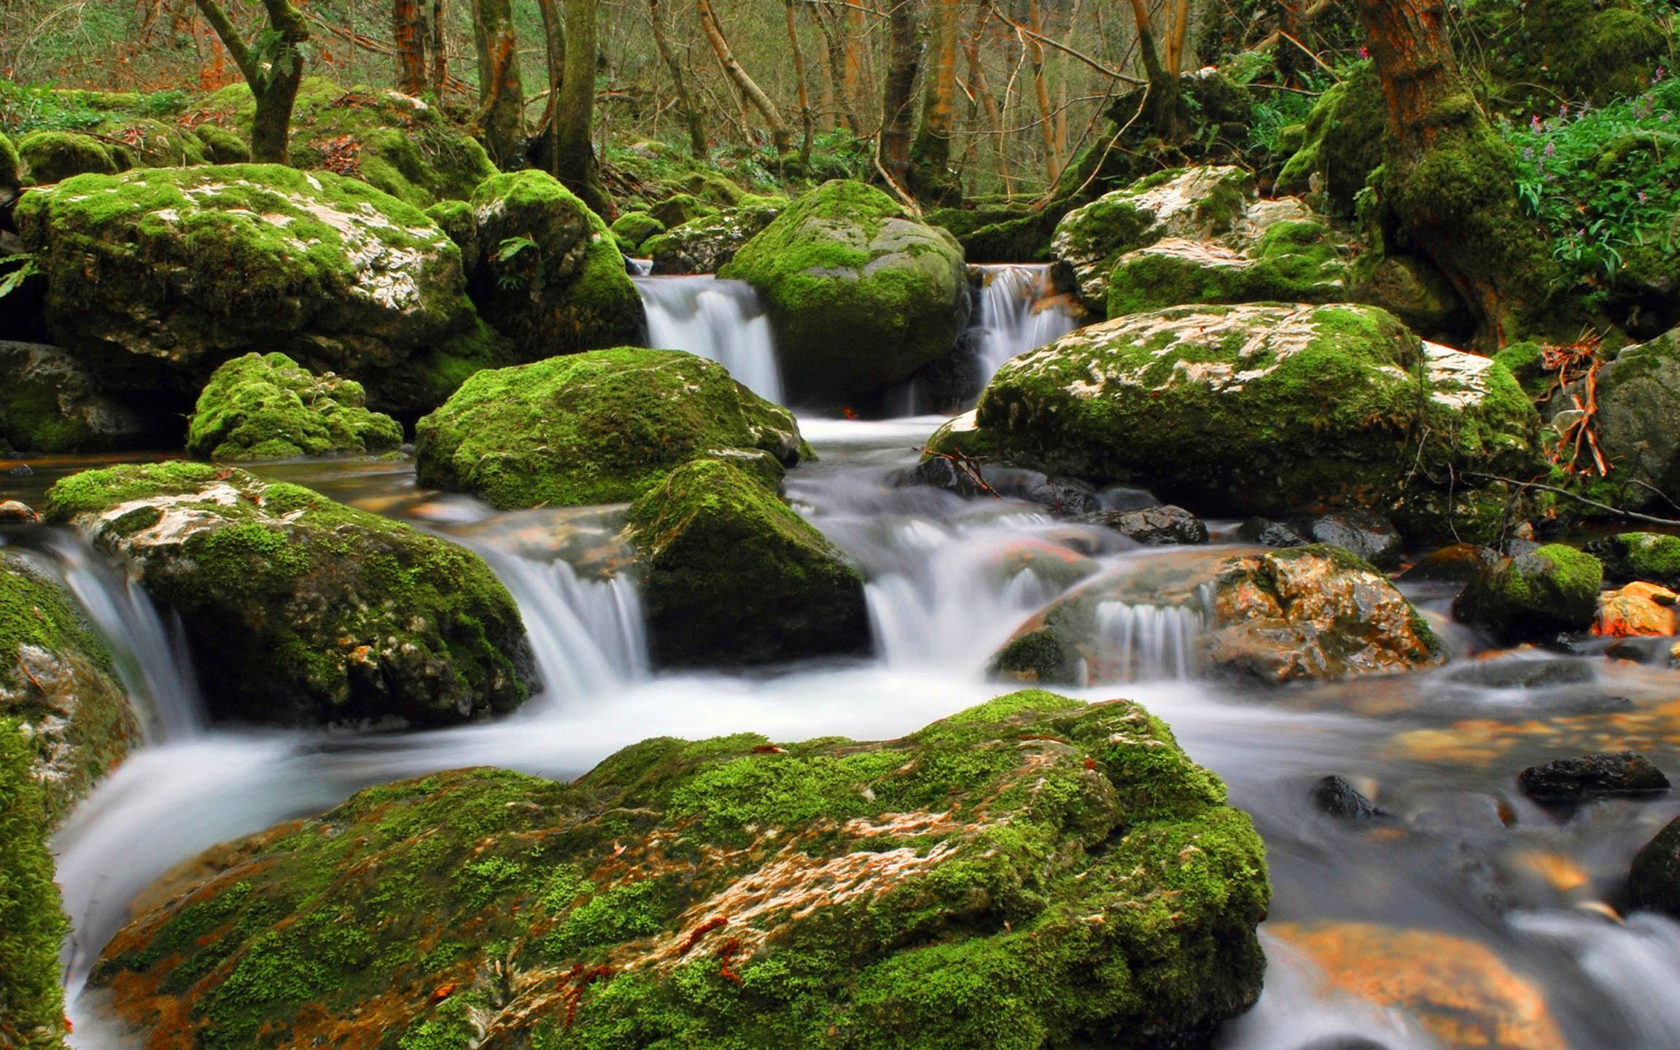 Free Fall Wallpaper 1920x1080 Nature Stream Of Clear Water Flowing Between Rocks Moss